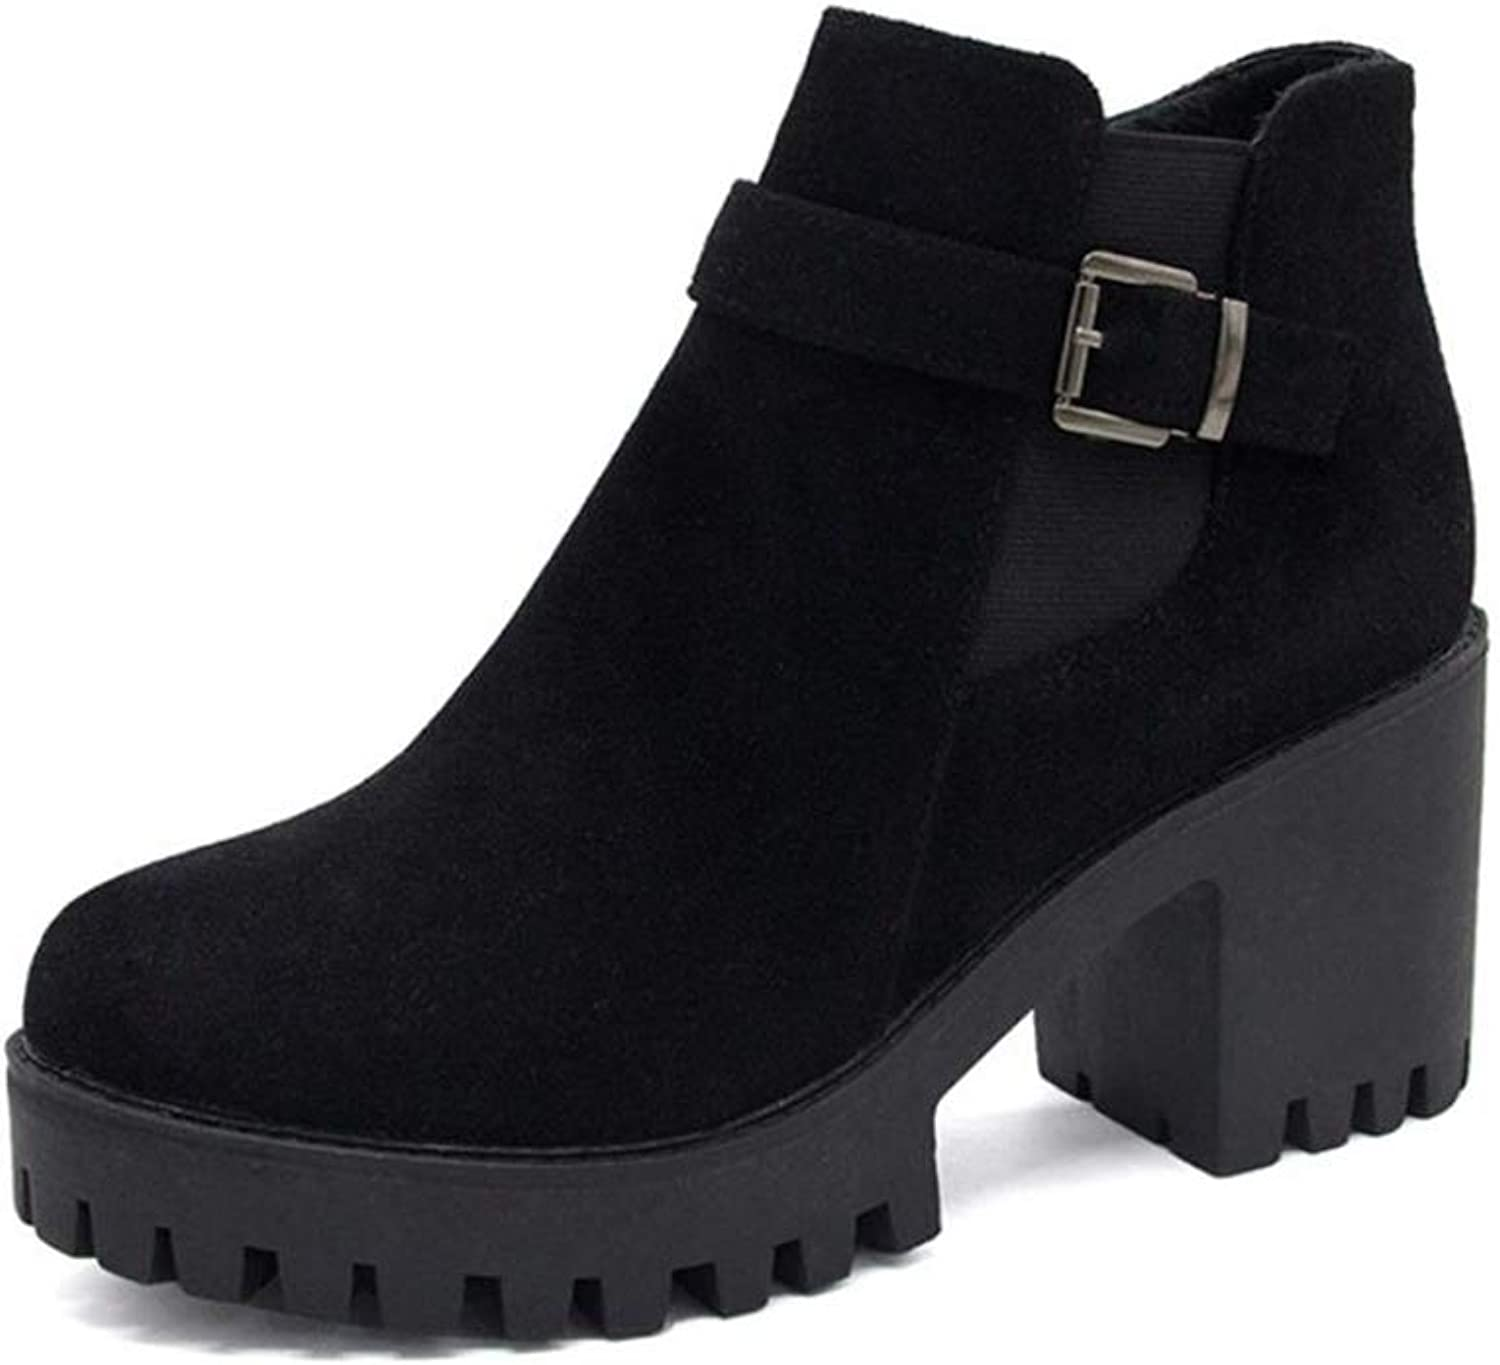 Quality.A Women's Buckle Martin Boots Thick with Ankle Boots Ankle Boots high Heels